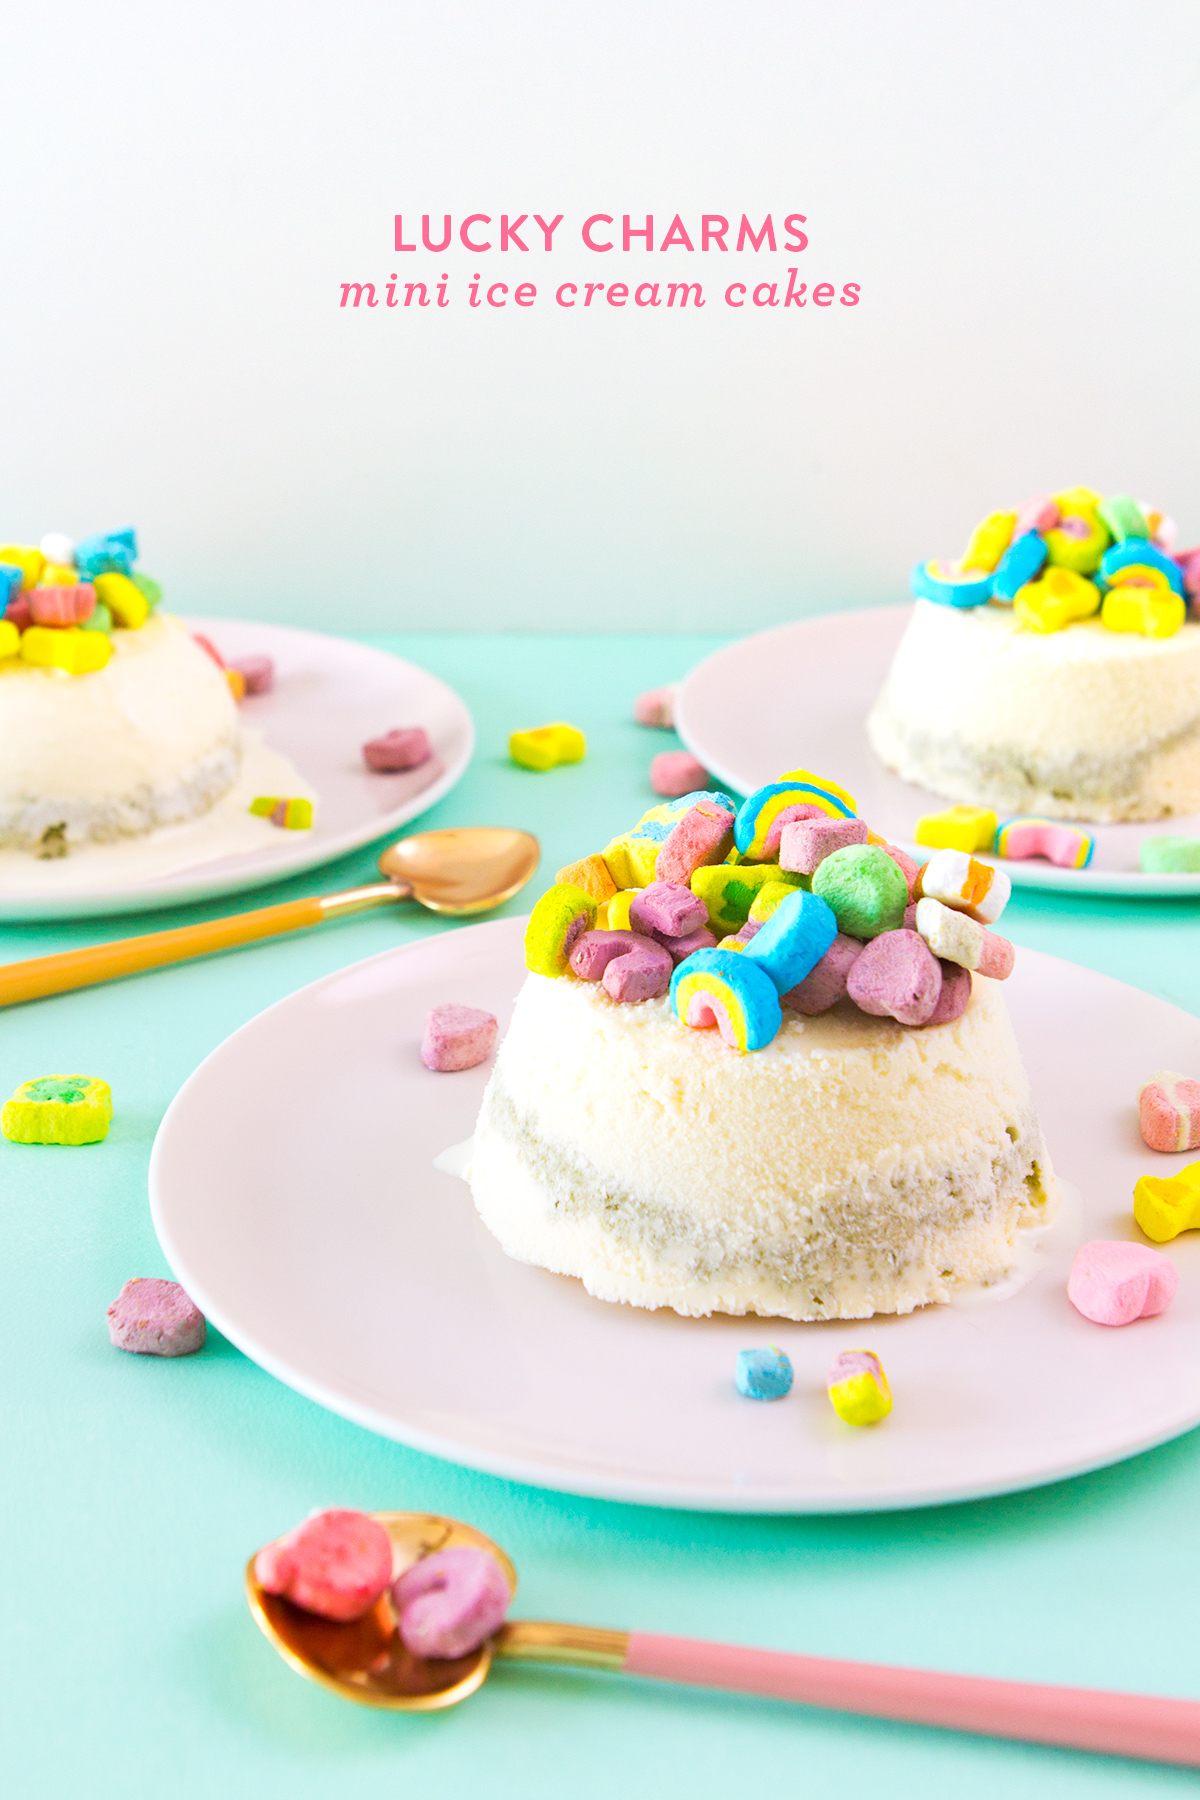 Easy no-bake Lucky Charms mini ice cream cakes! Perfect for St. Patricks Day! Click through for video tutorial.